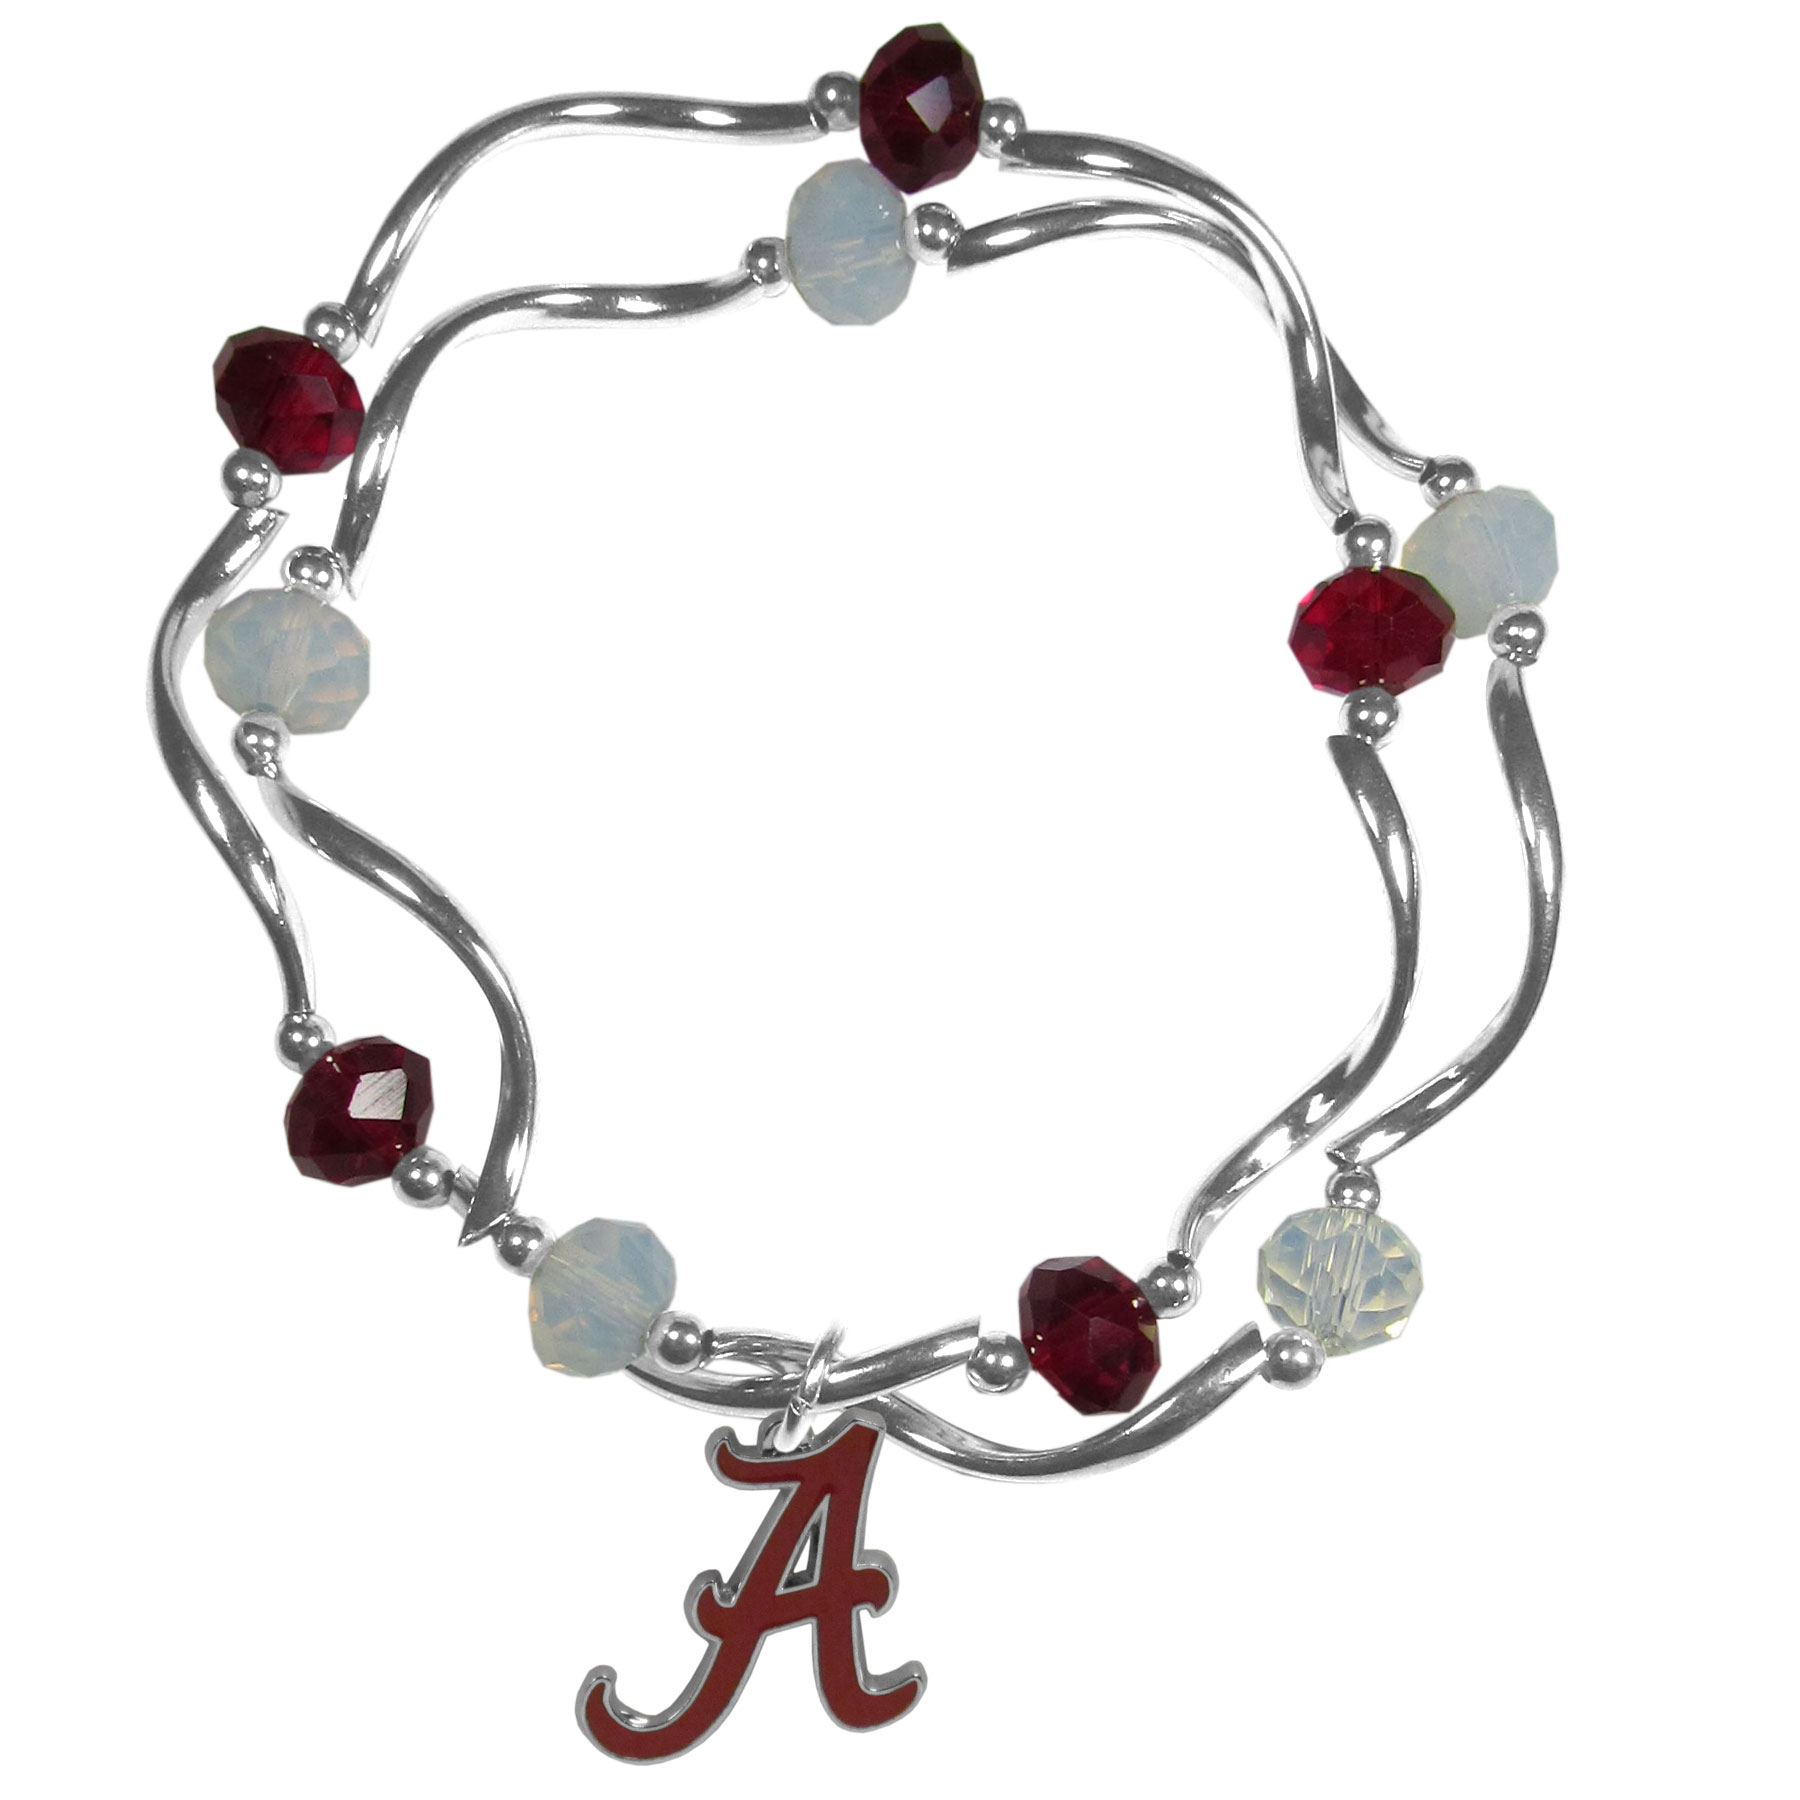 Alabama Crimson Tide Crystal Bead Bracelet - This delicate bead bracelet has eye-catching team colored beads that are strung on 2 stretch cords that provide a comfortable and easy fit. The crystals are separated by beautiful helix beads in high polish chrome for a truly designer inspired look. The 2 strands of beads intertwine for a fun and stylish bracelet. This chic accessory is finished off with a Alabama Crimson Tide team charm that has expertly carved detail and an enameled color finish. A contemporary look to thrill any female sports fan. Whether this a gift for yourself or someone special you cannot miss with this trend-setting fashion bracelet.